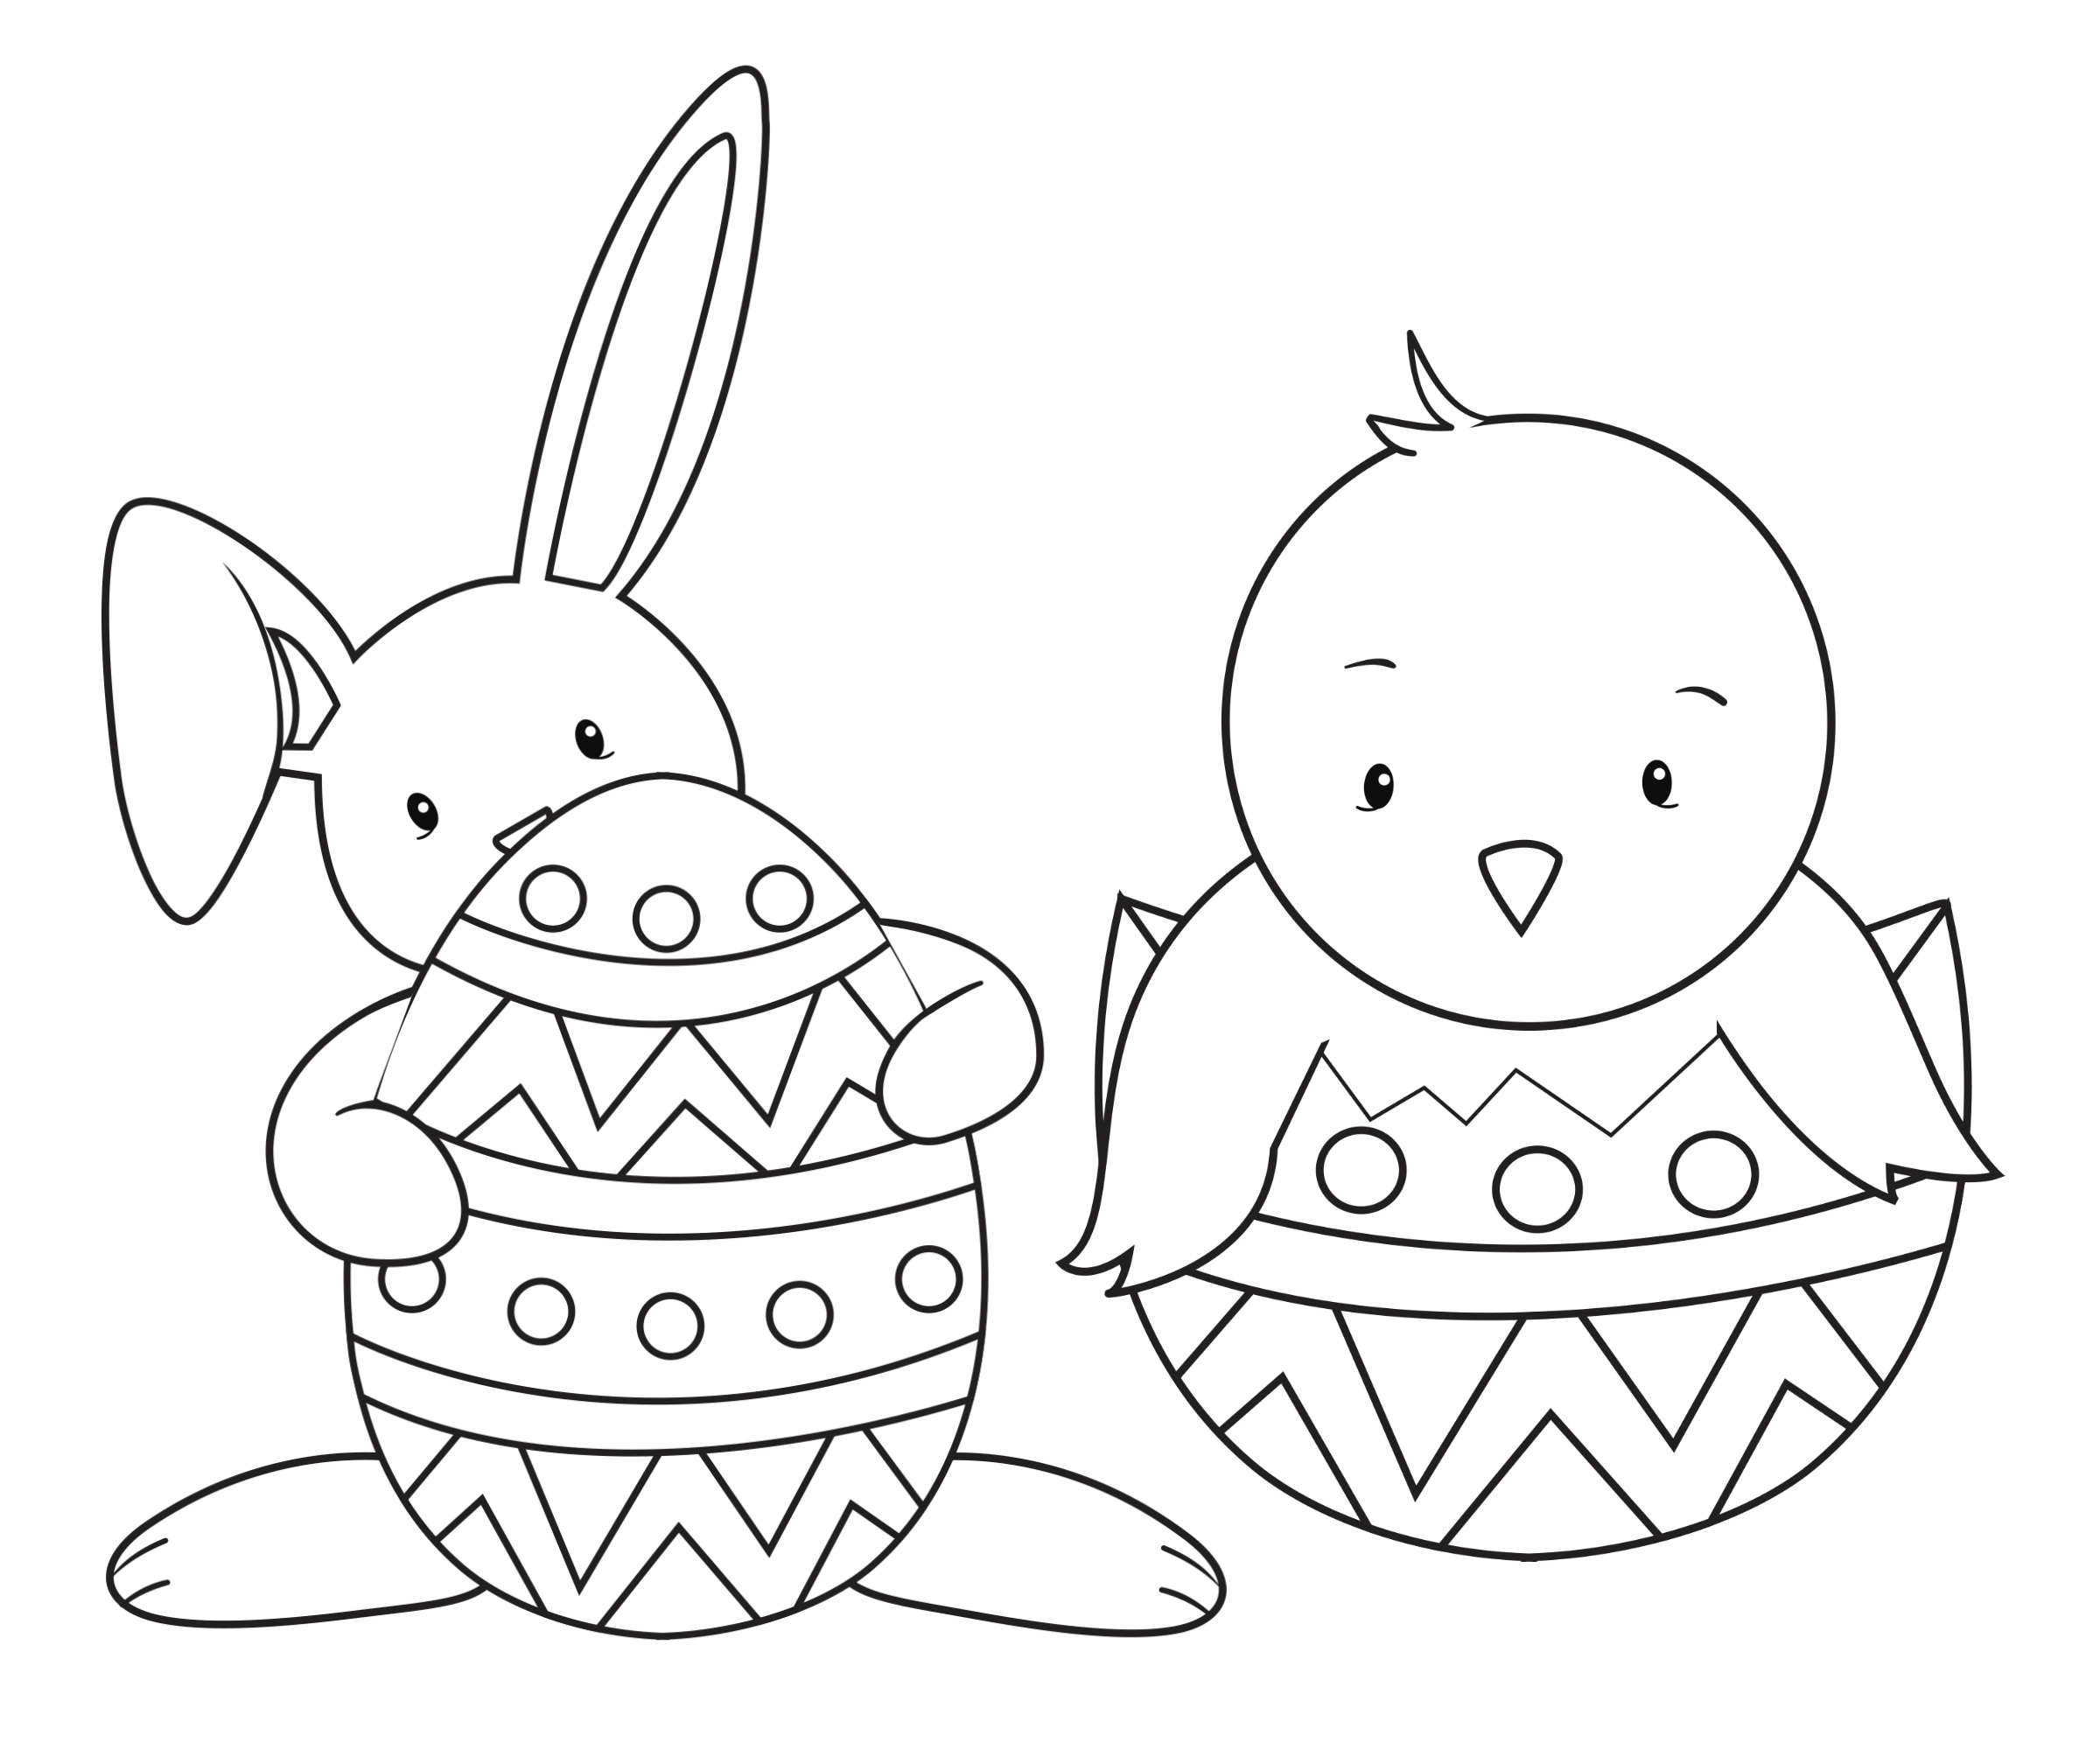 Free Easter Coloring Pages For Kindergarten : Easter coloring pages crazy little projects